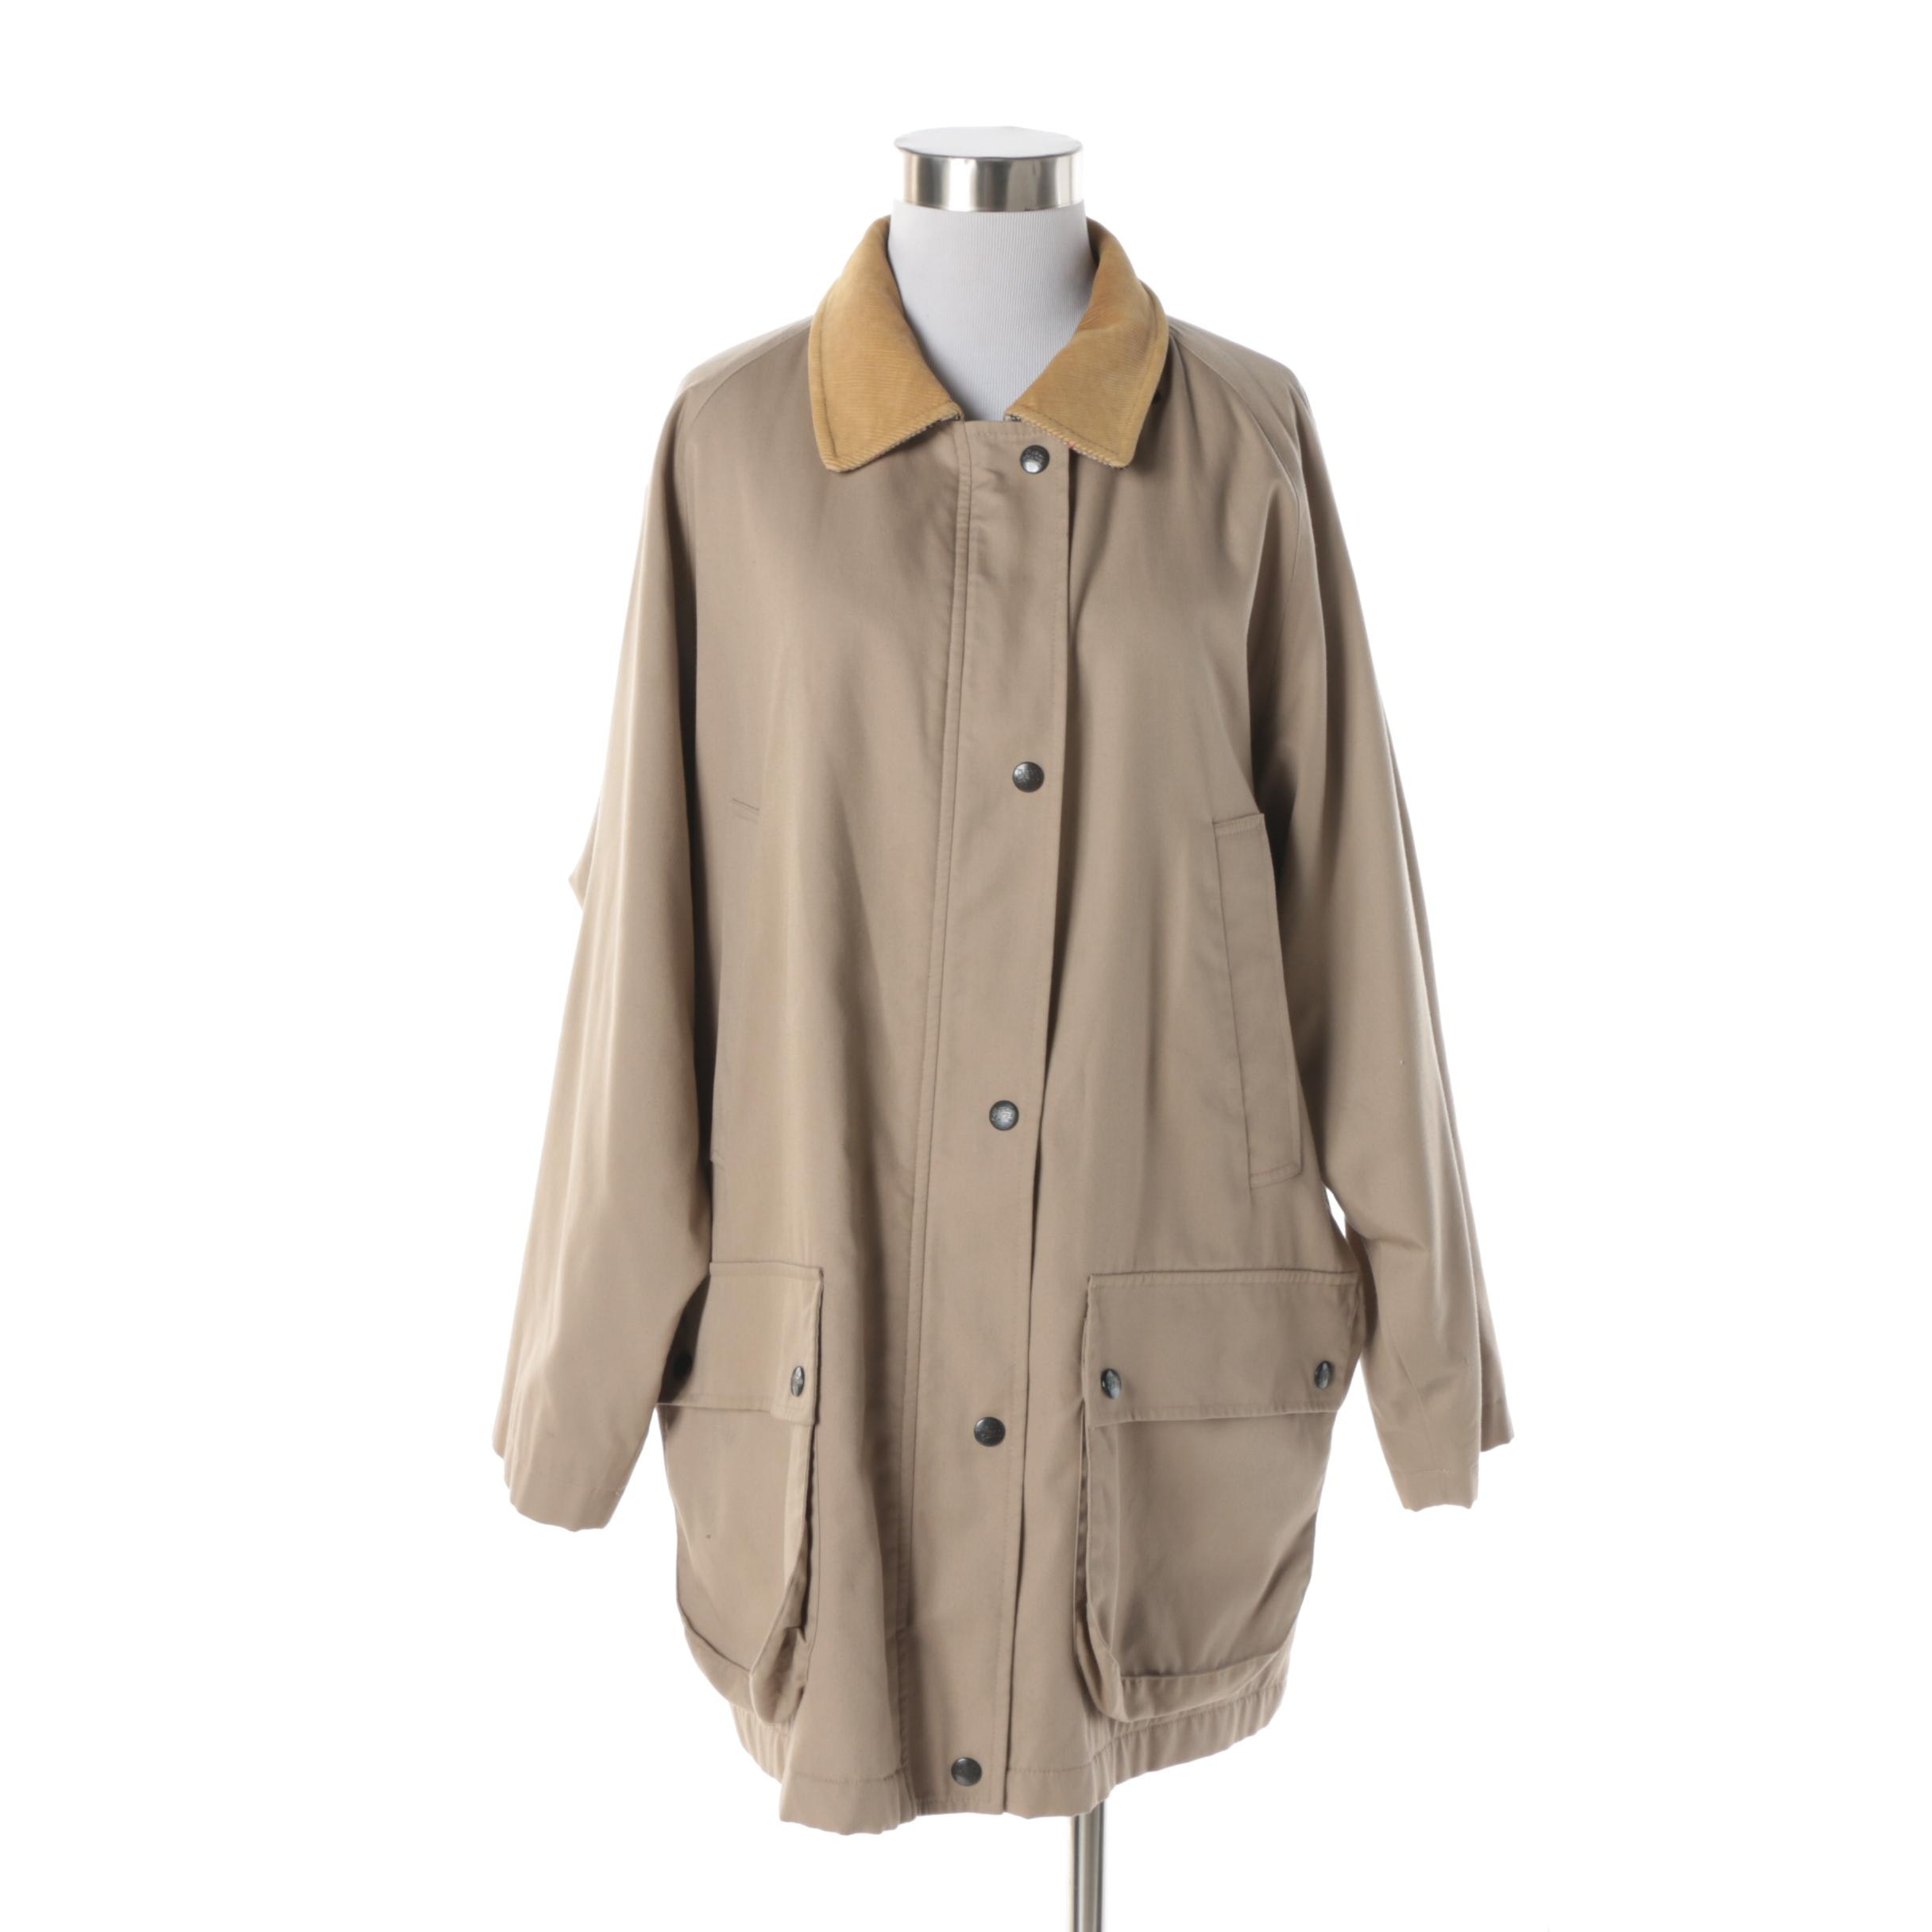 Women's Burberry Khaki Jacket with Removable Wool Lining